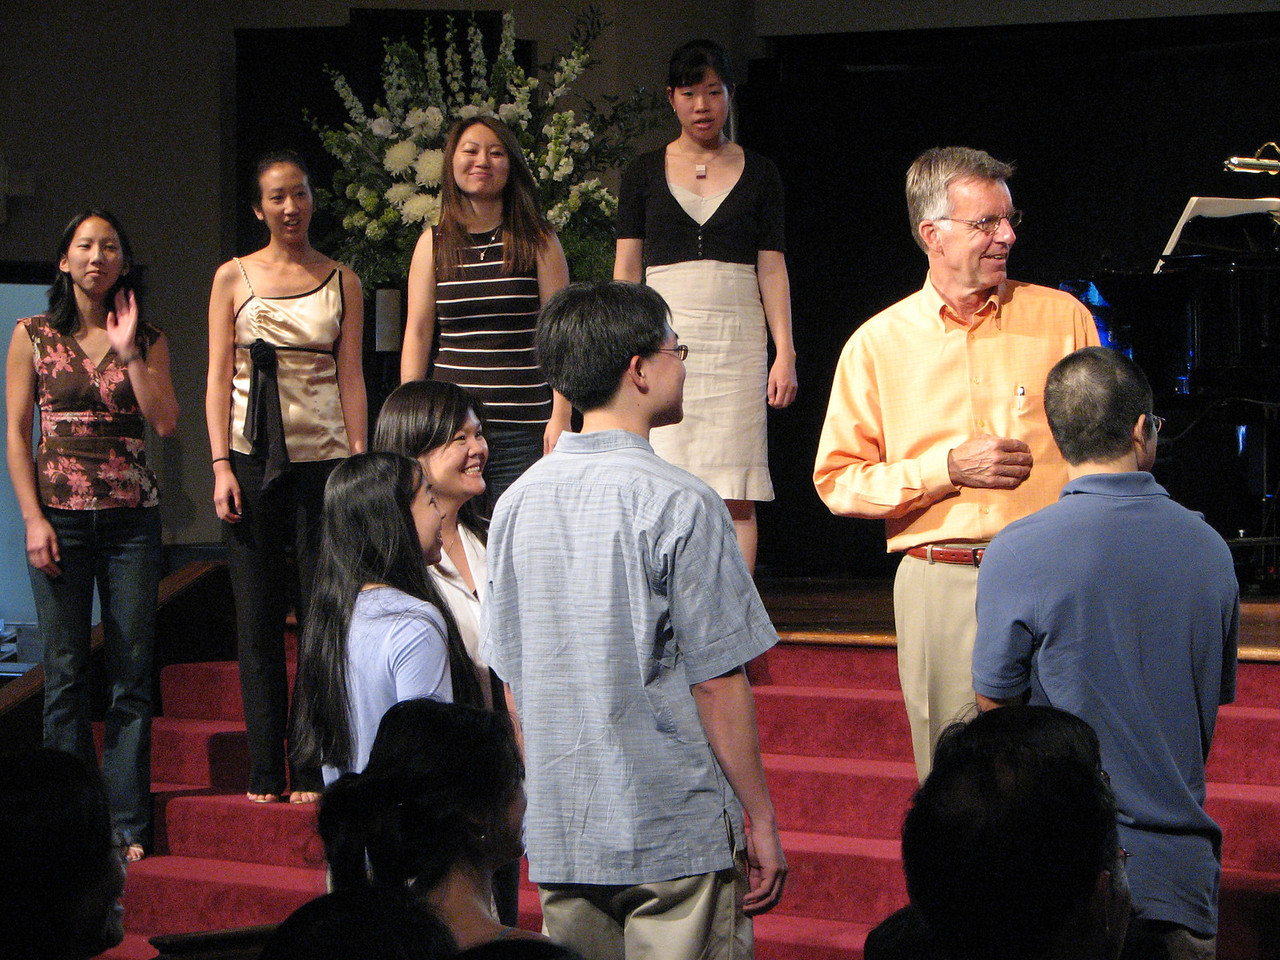 2007 05 18 Fri - Rehearsal - Bridesmaids, bride, pastor, groom, & best man